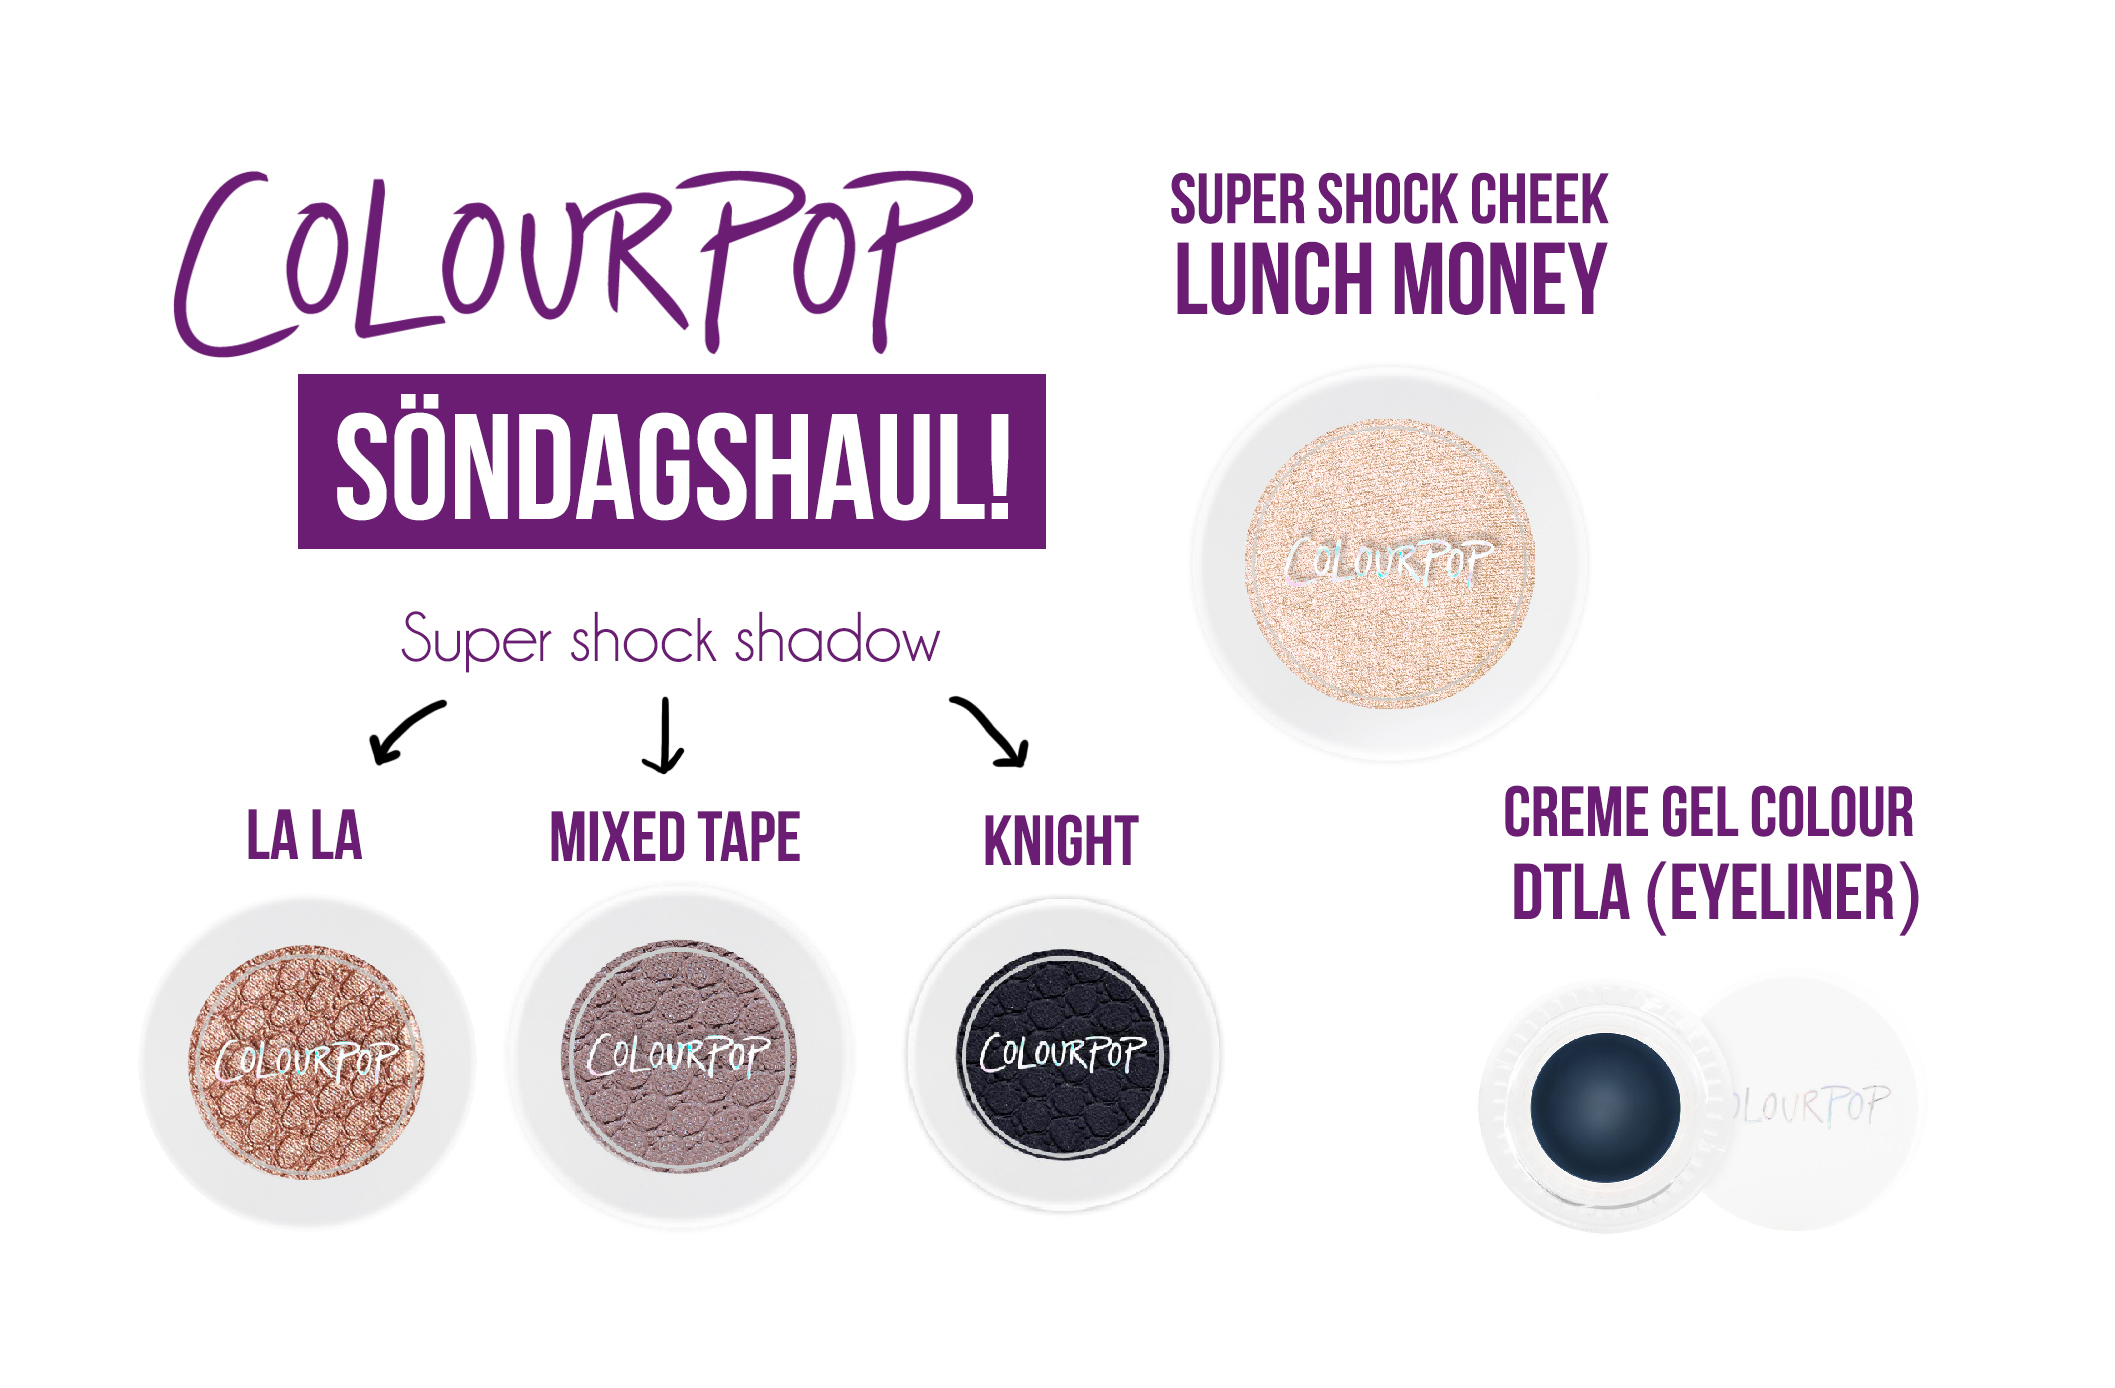 Söndagshaul Colourpop